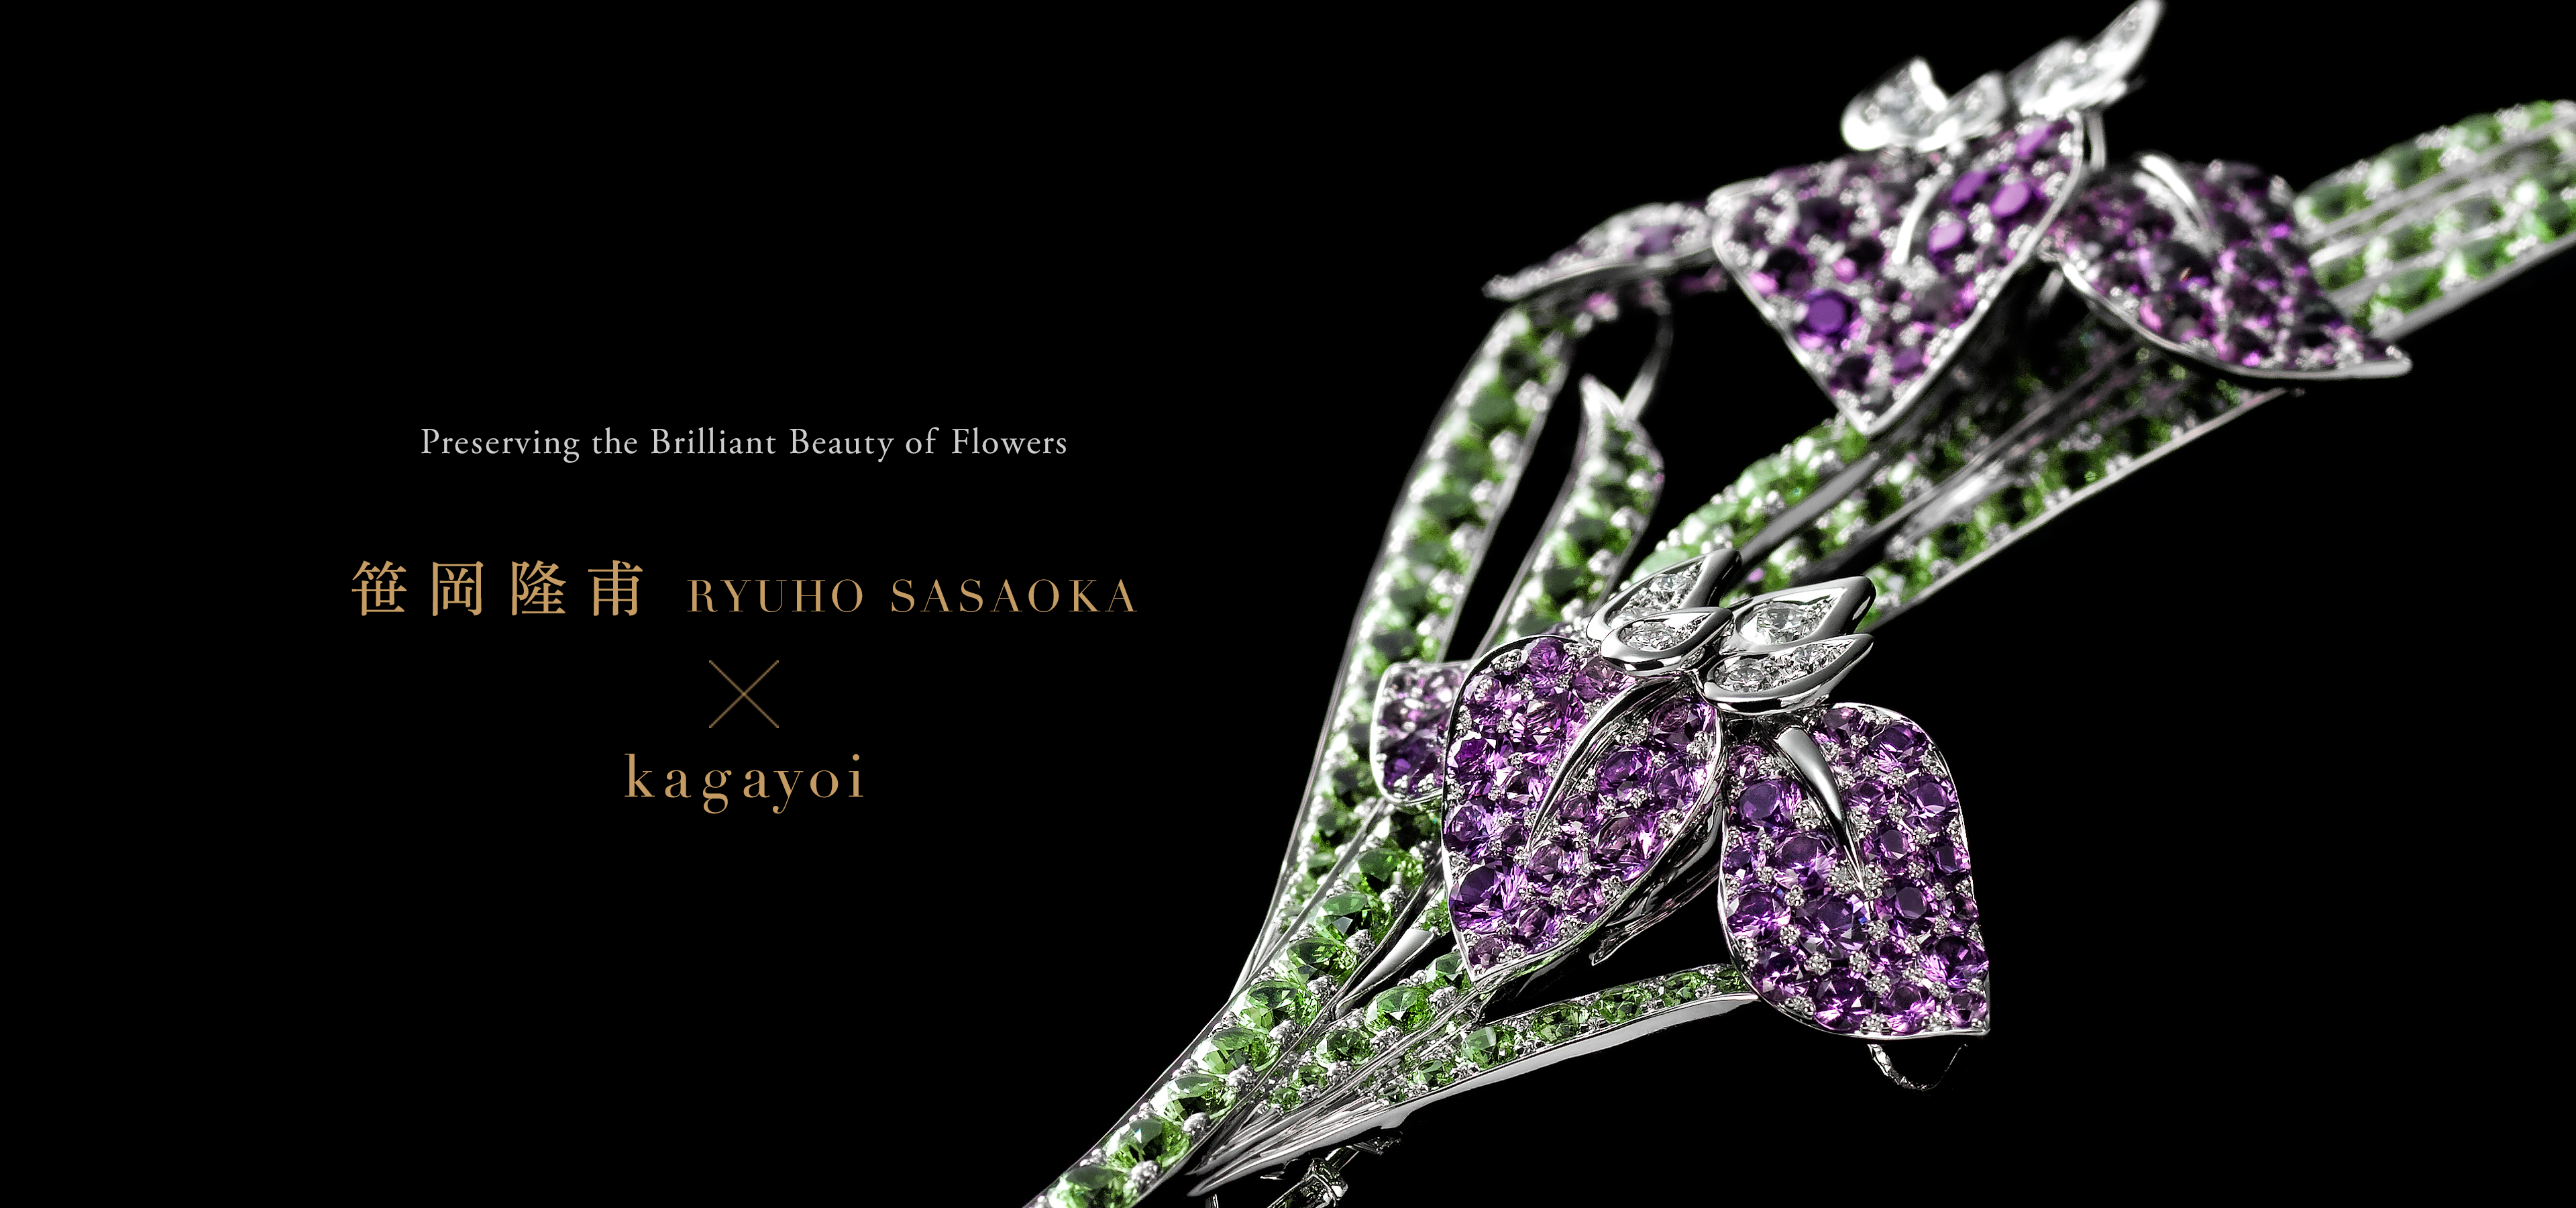 Preserving the brilliant beauty of flowers kagayoi and ryuho preserving the brilliant beauty of flowers kagayoi and ryuho sasaoka kagayoi izmirmasajfo Images